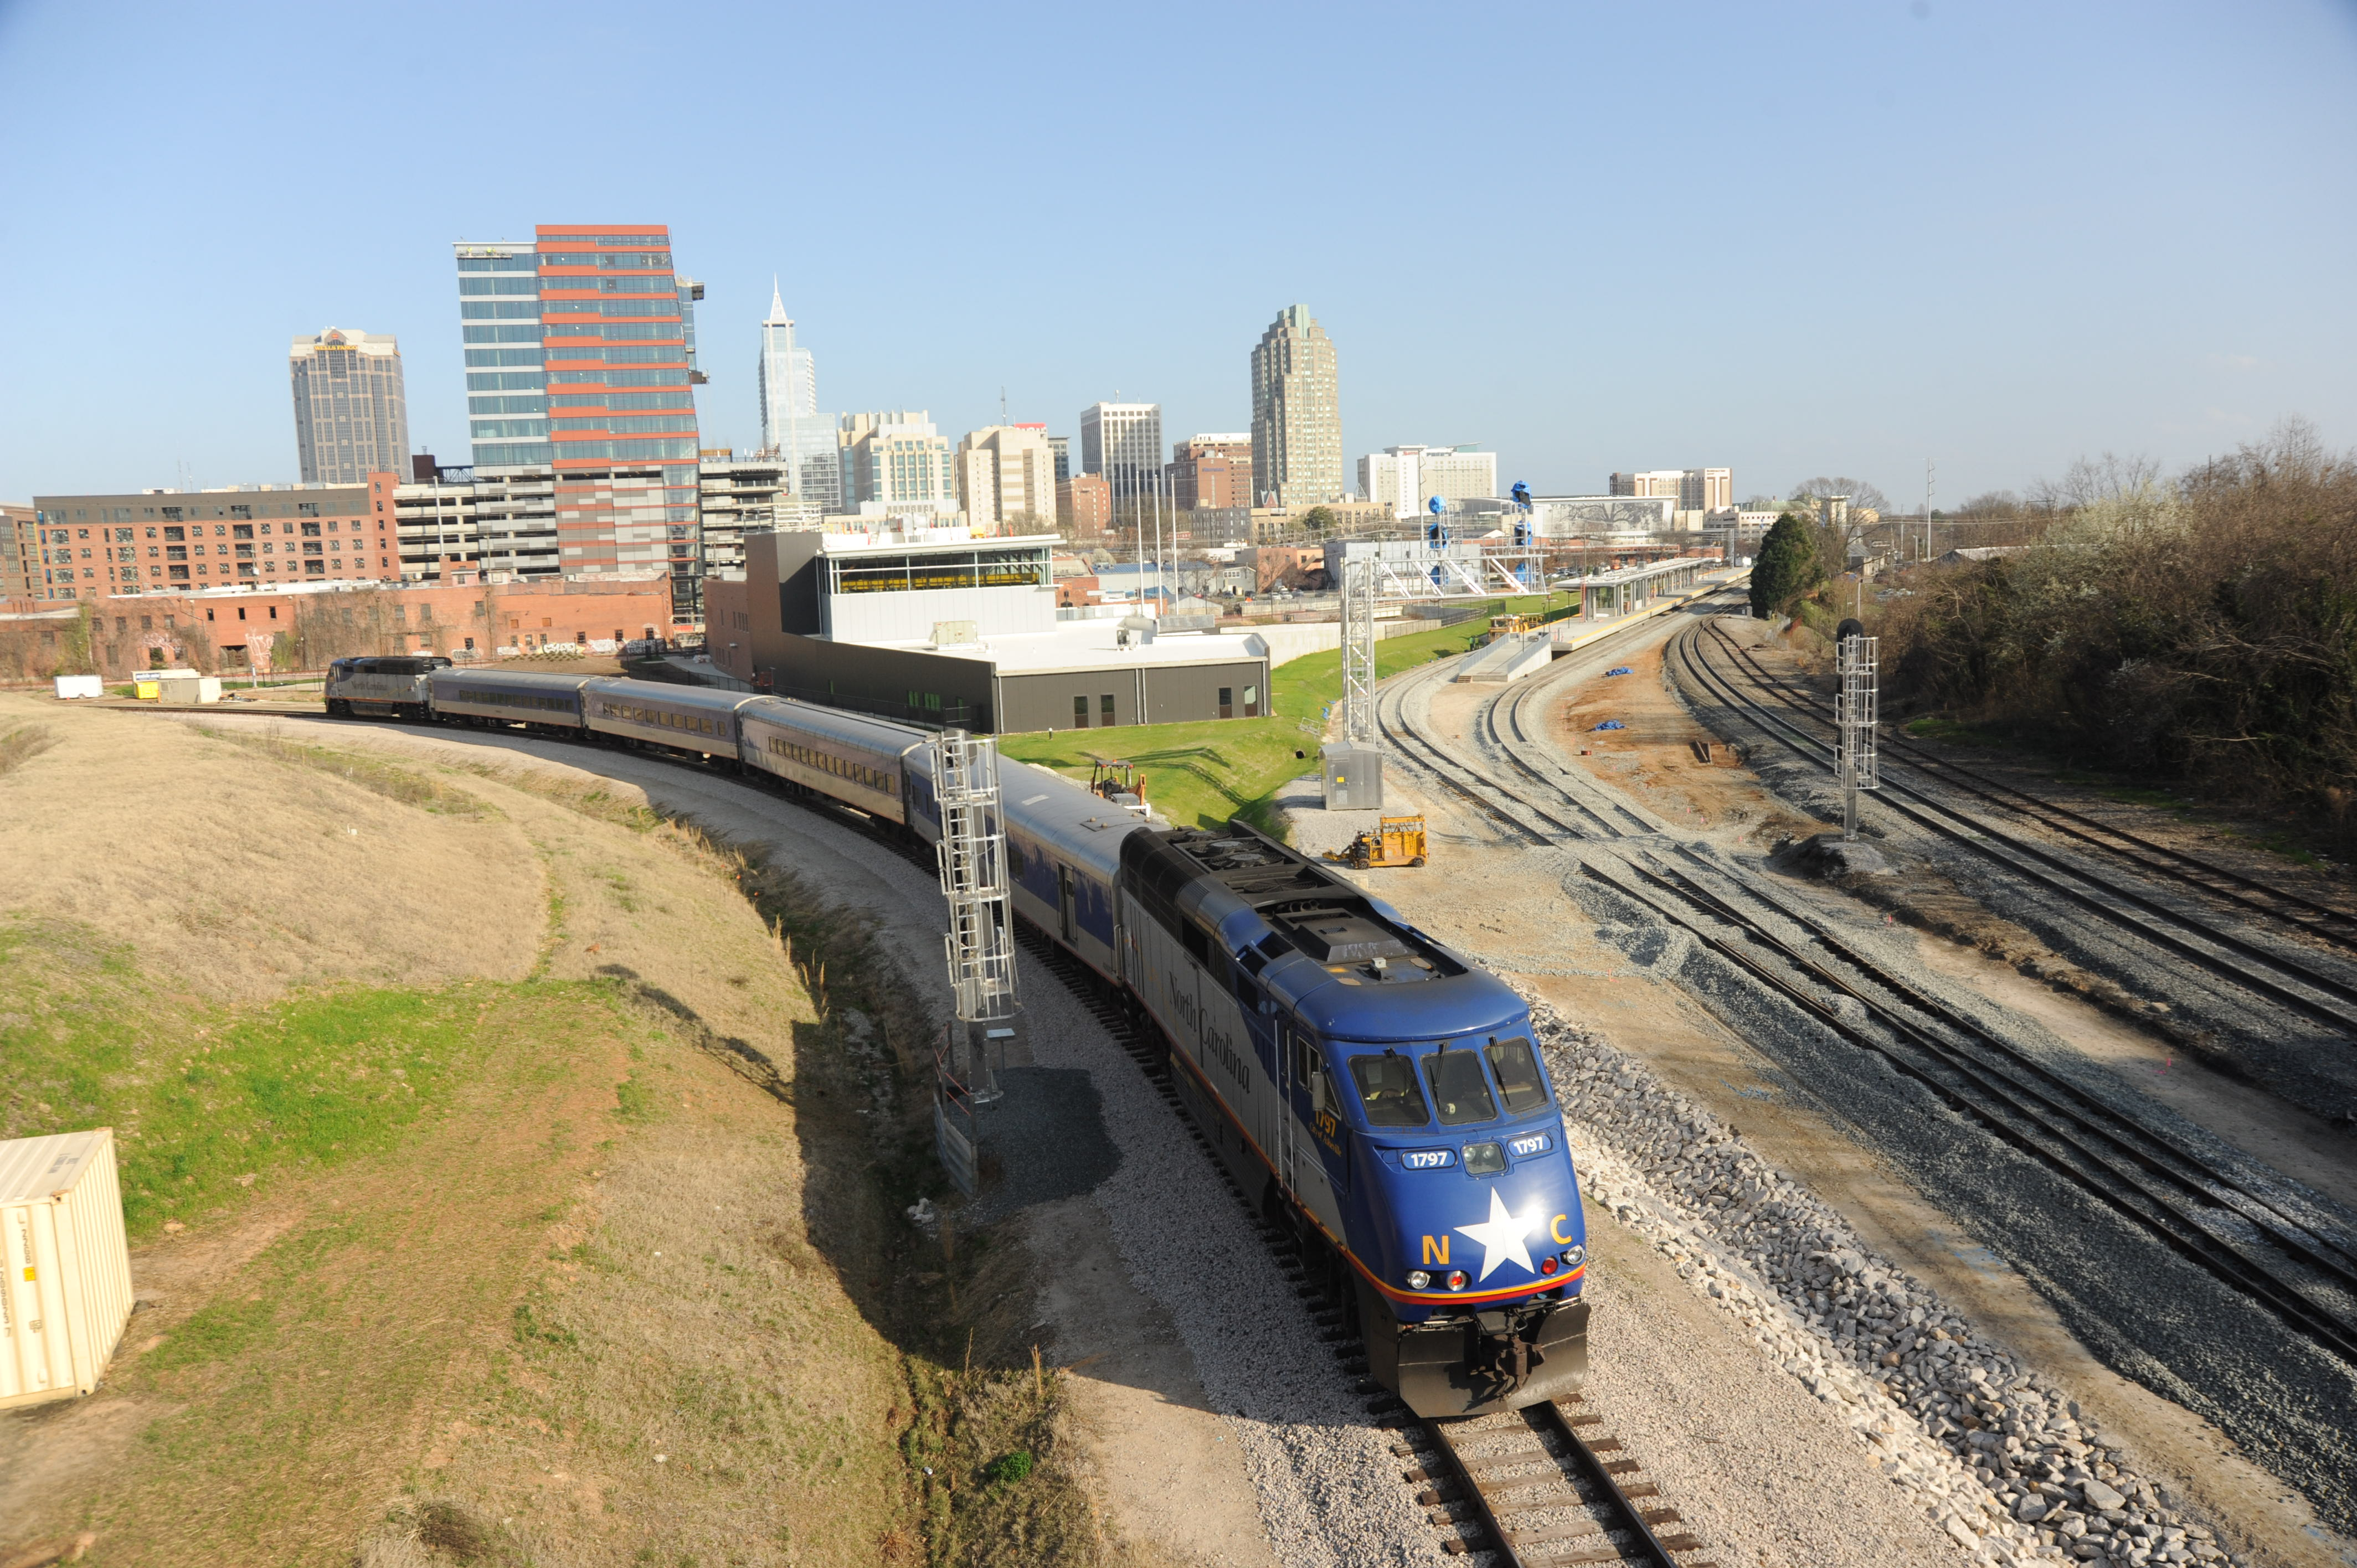 As We Were Wring Up The Tour Of Raleigh Construction Site One Piedmont Intrastate Trains From Charlotte Arrived At Cabarrus Avenue